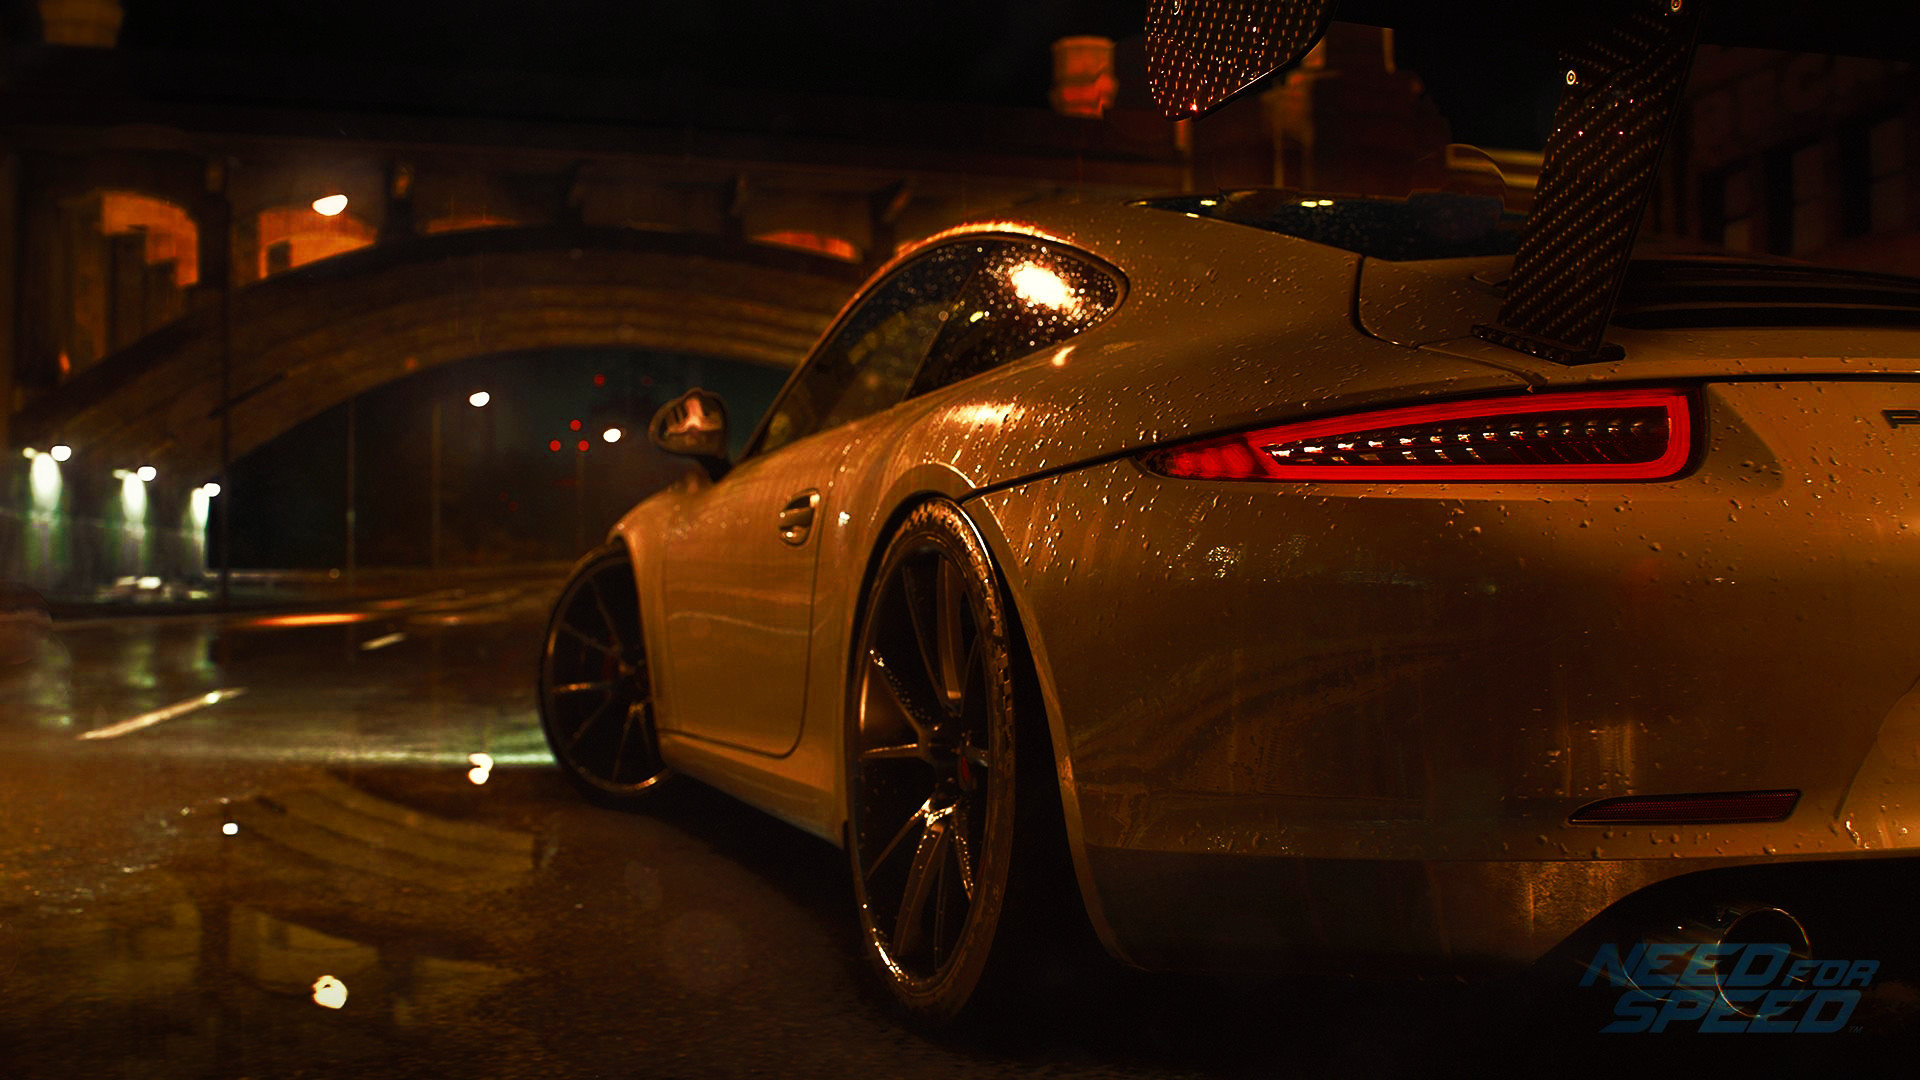 Need For Speed (2015) Wallpapers 1920x1080 Full HD (1080p